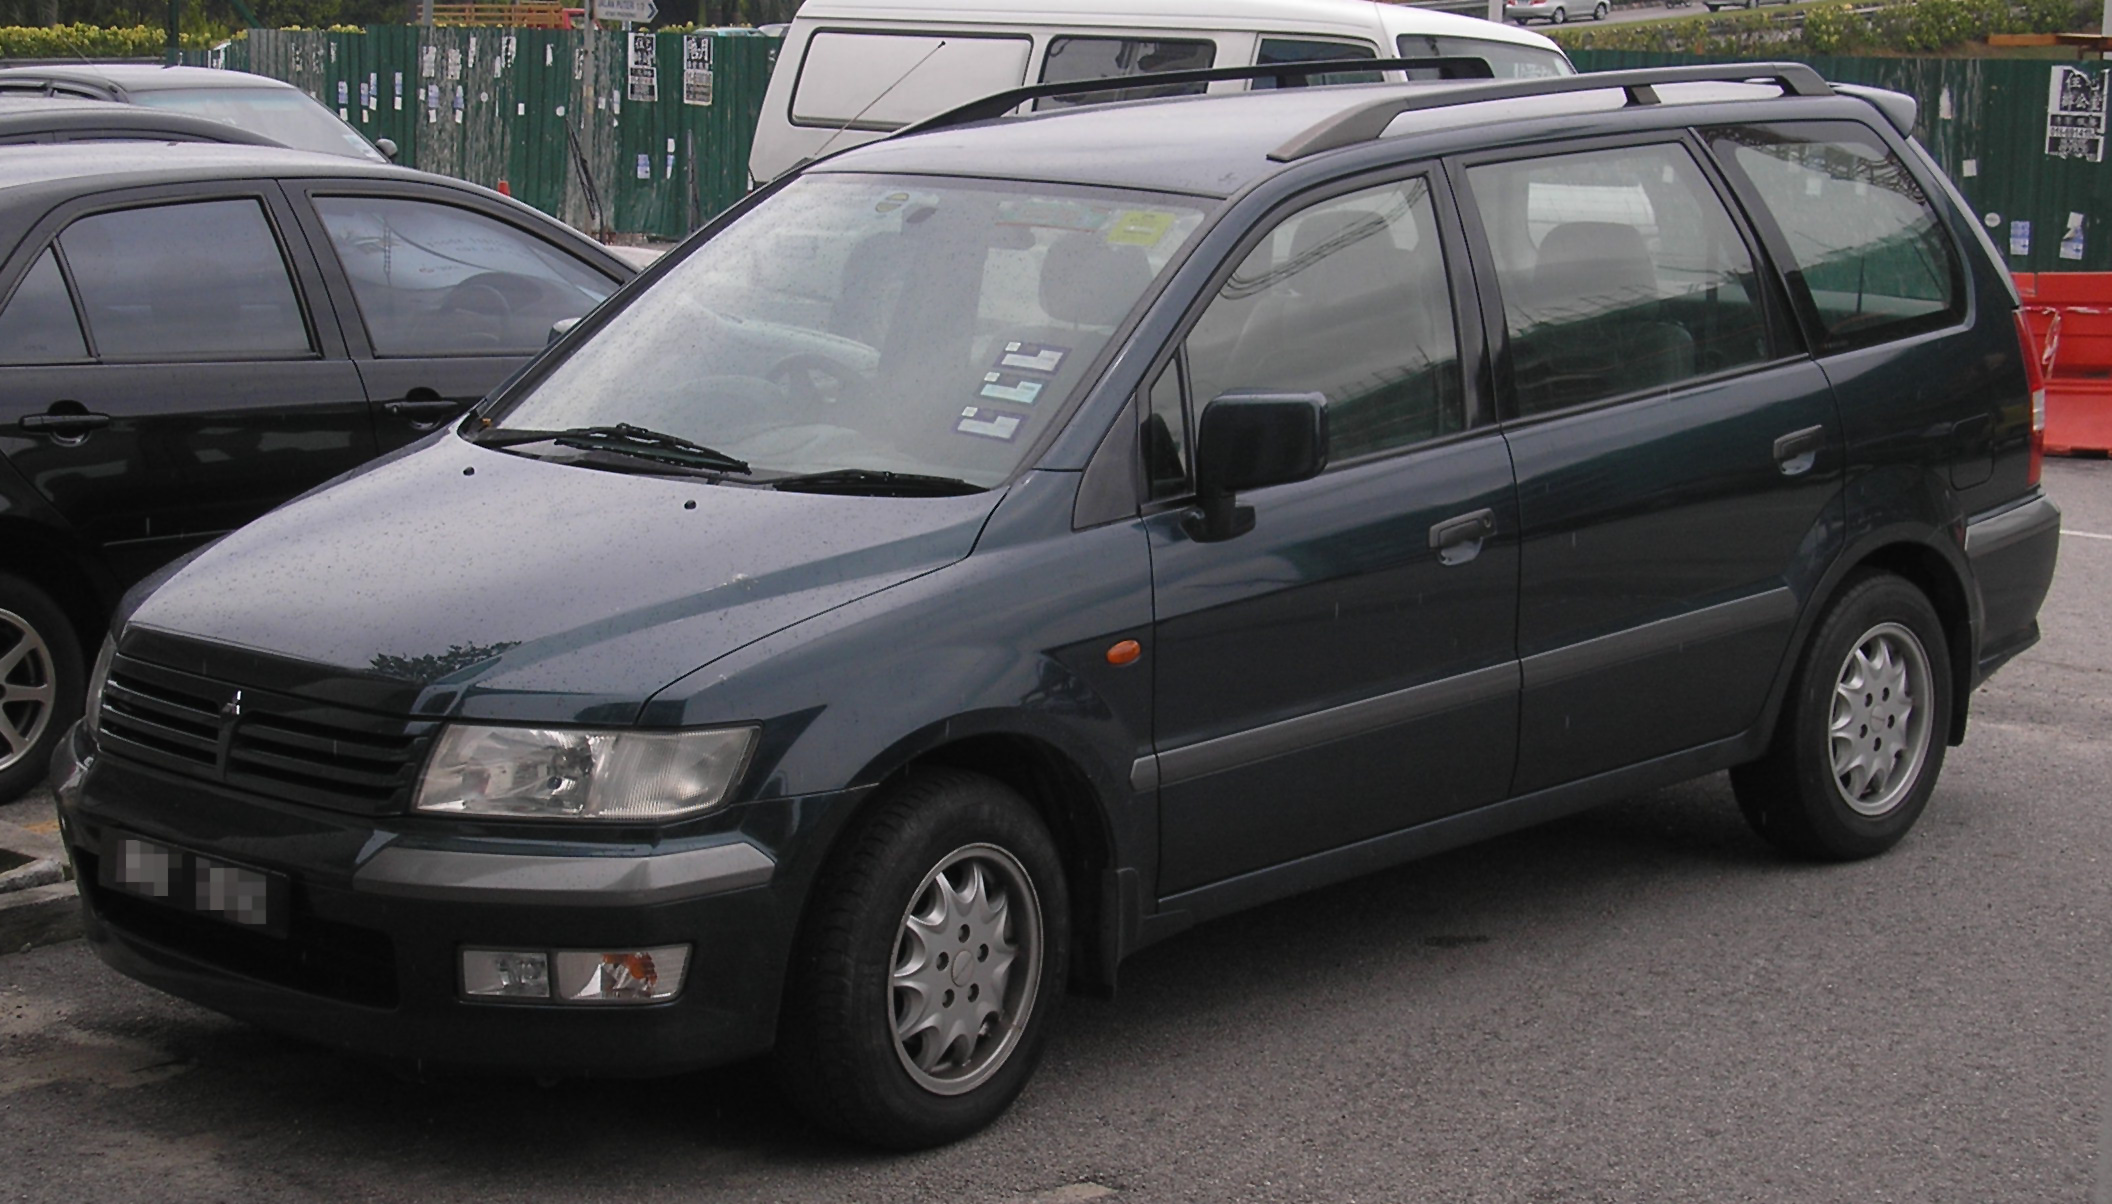 file mitsubishi space wagon third generation front wikimedia commons. Black Bedroom Furniture Sets. Home Design Ideas